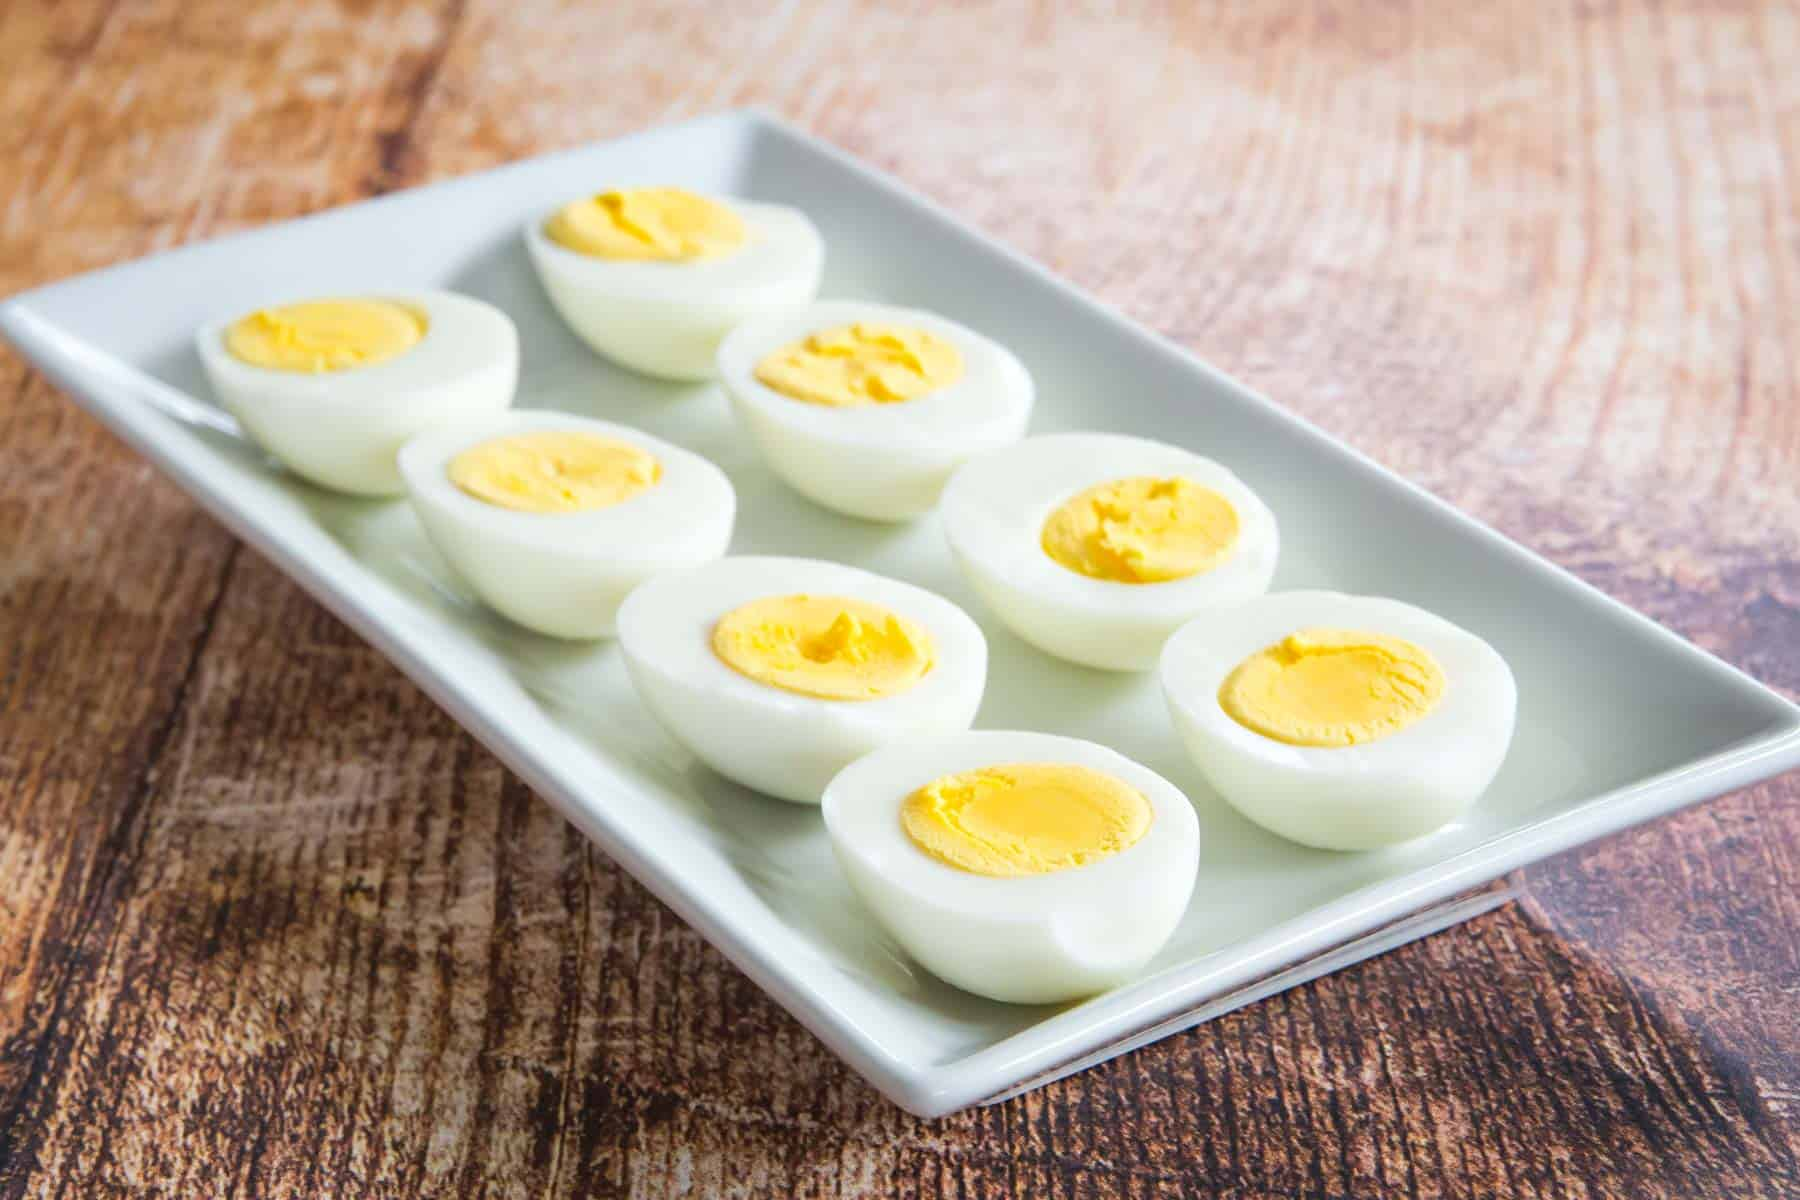 eight halves of hard boiled eggs lined up on a white rectangular plate